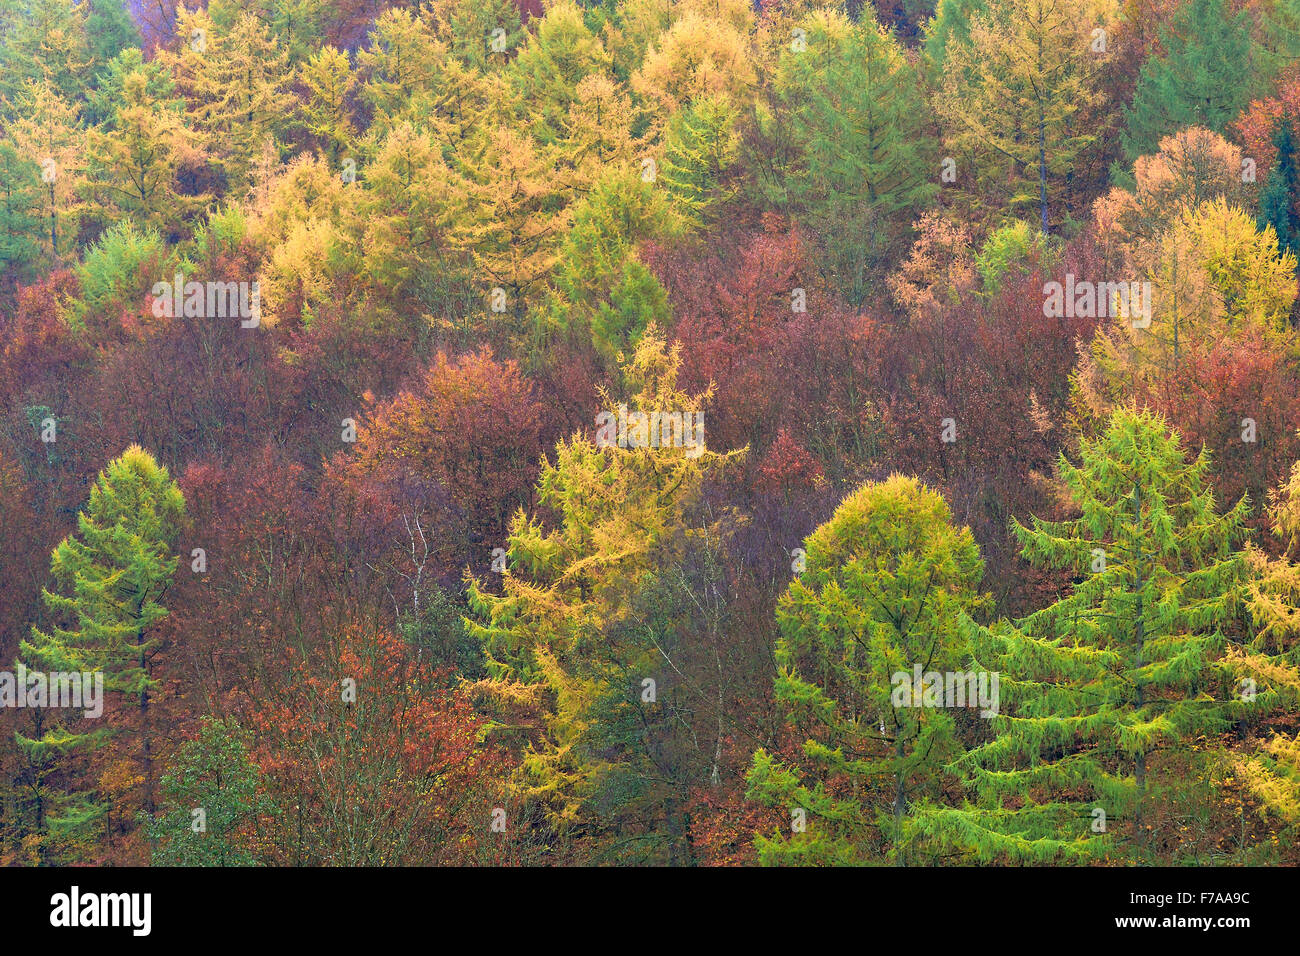 Autumnal mixed forest with larches (Larix), spruce trees (Picea abies) and beech trees (Fagus sylvatica), North Stock Photo